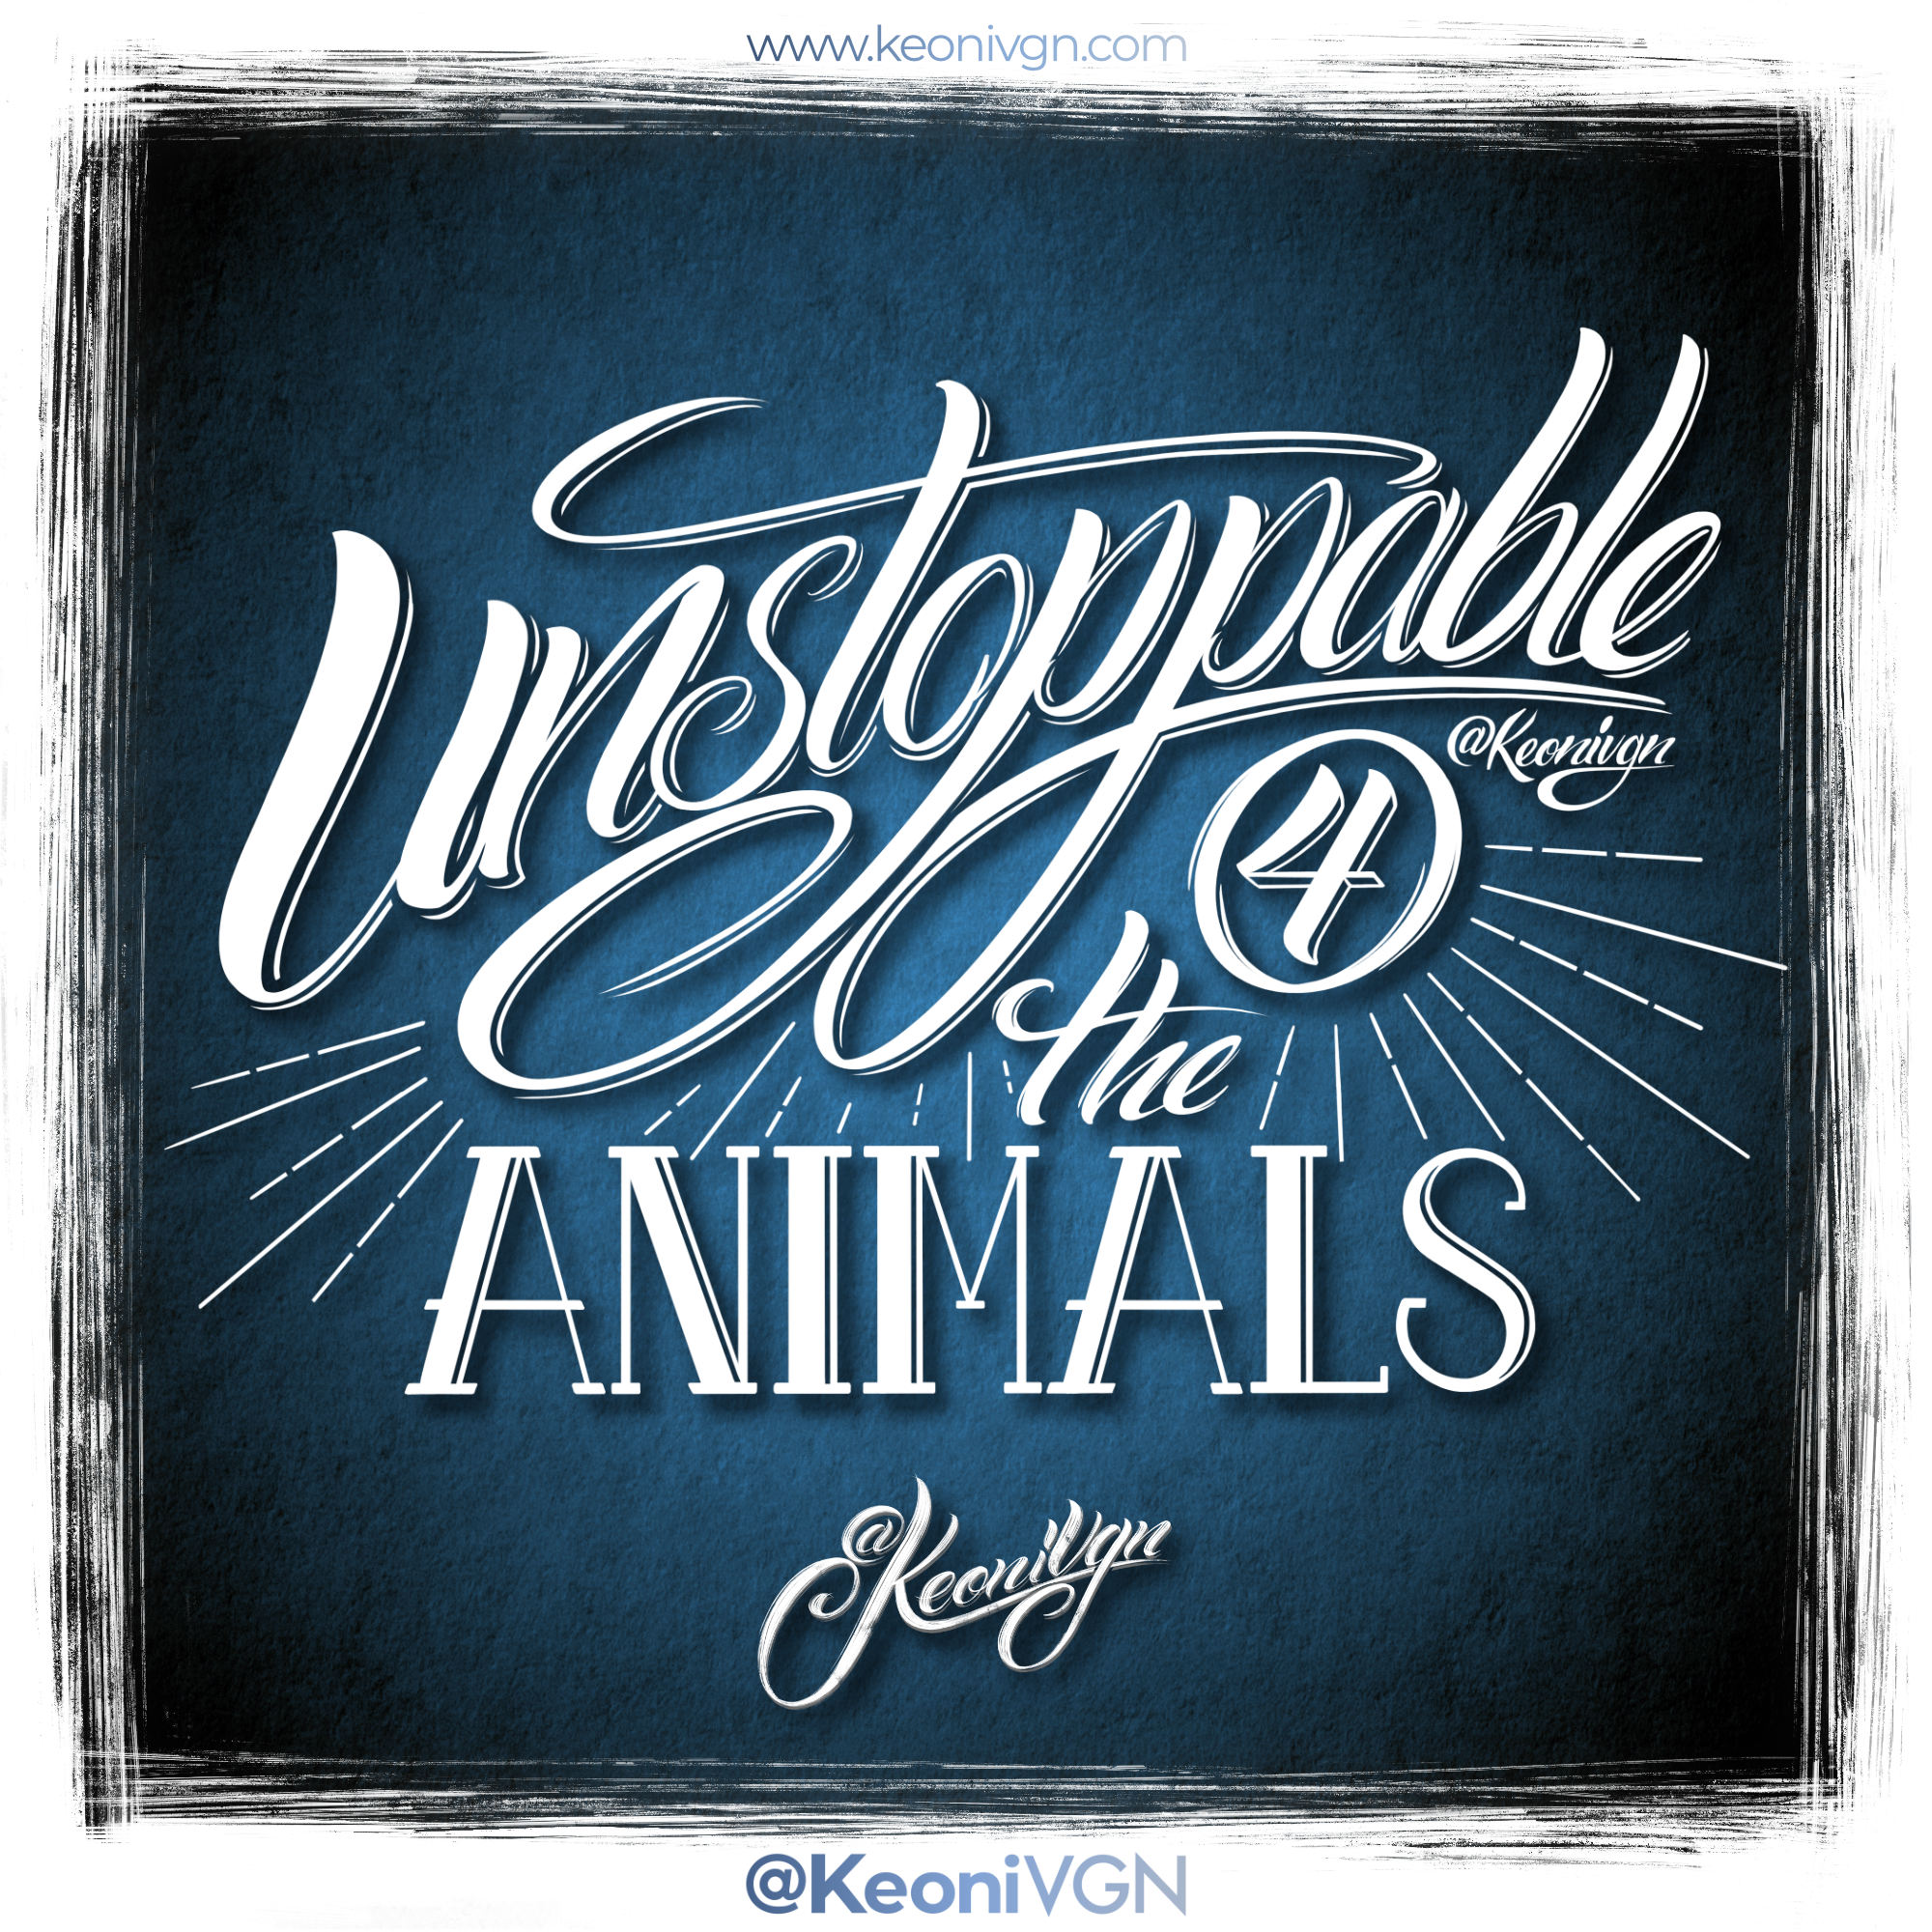 proyecto UNSTOPPABLE FOR THE ANIMALS